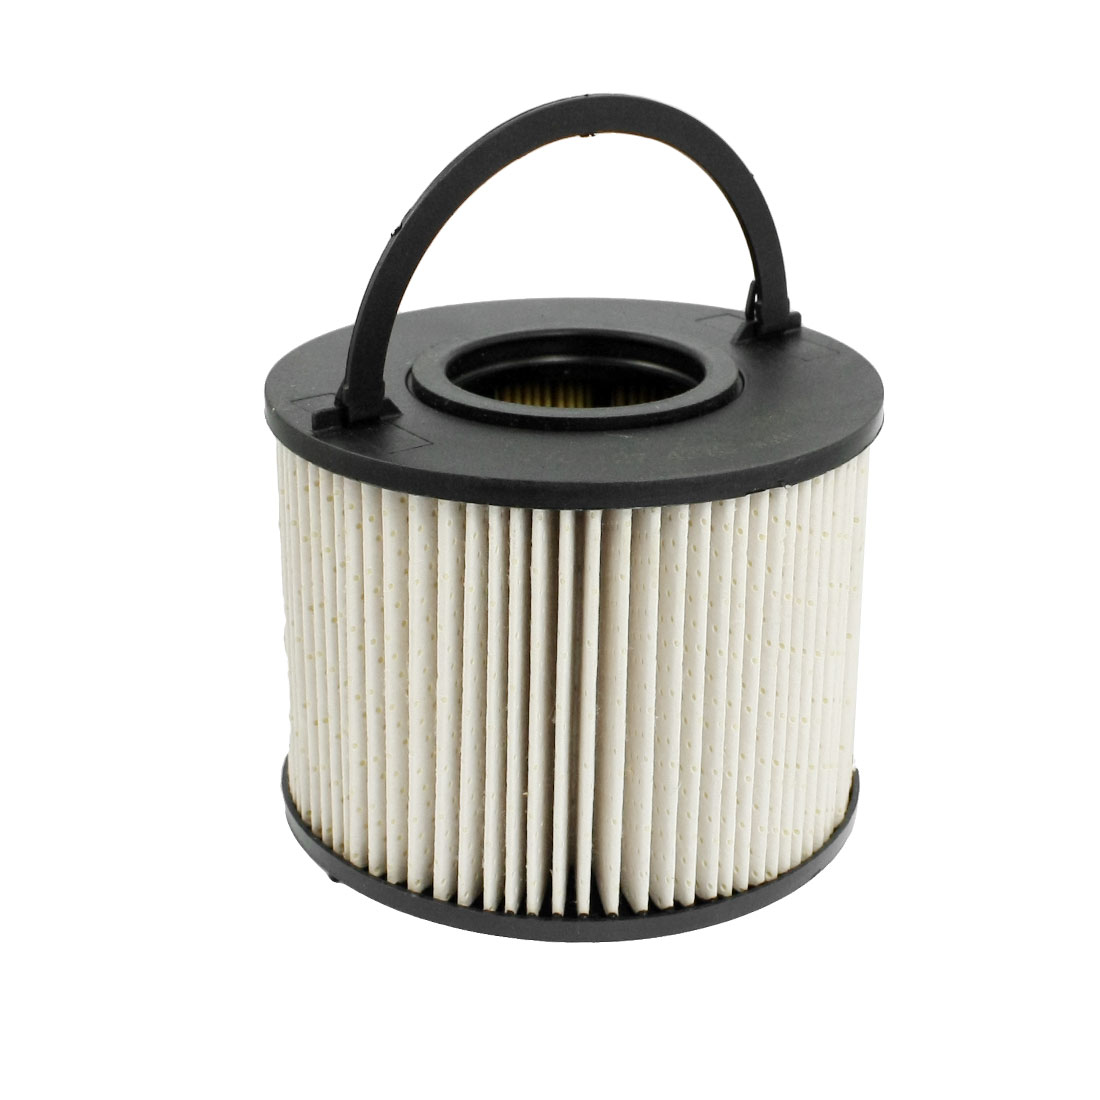 Car Auto Cartridge Oil Filter w Rubber Gaskets for Audi Q7